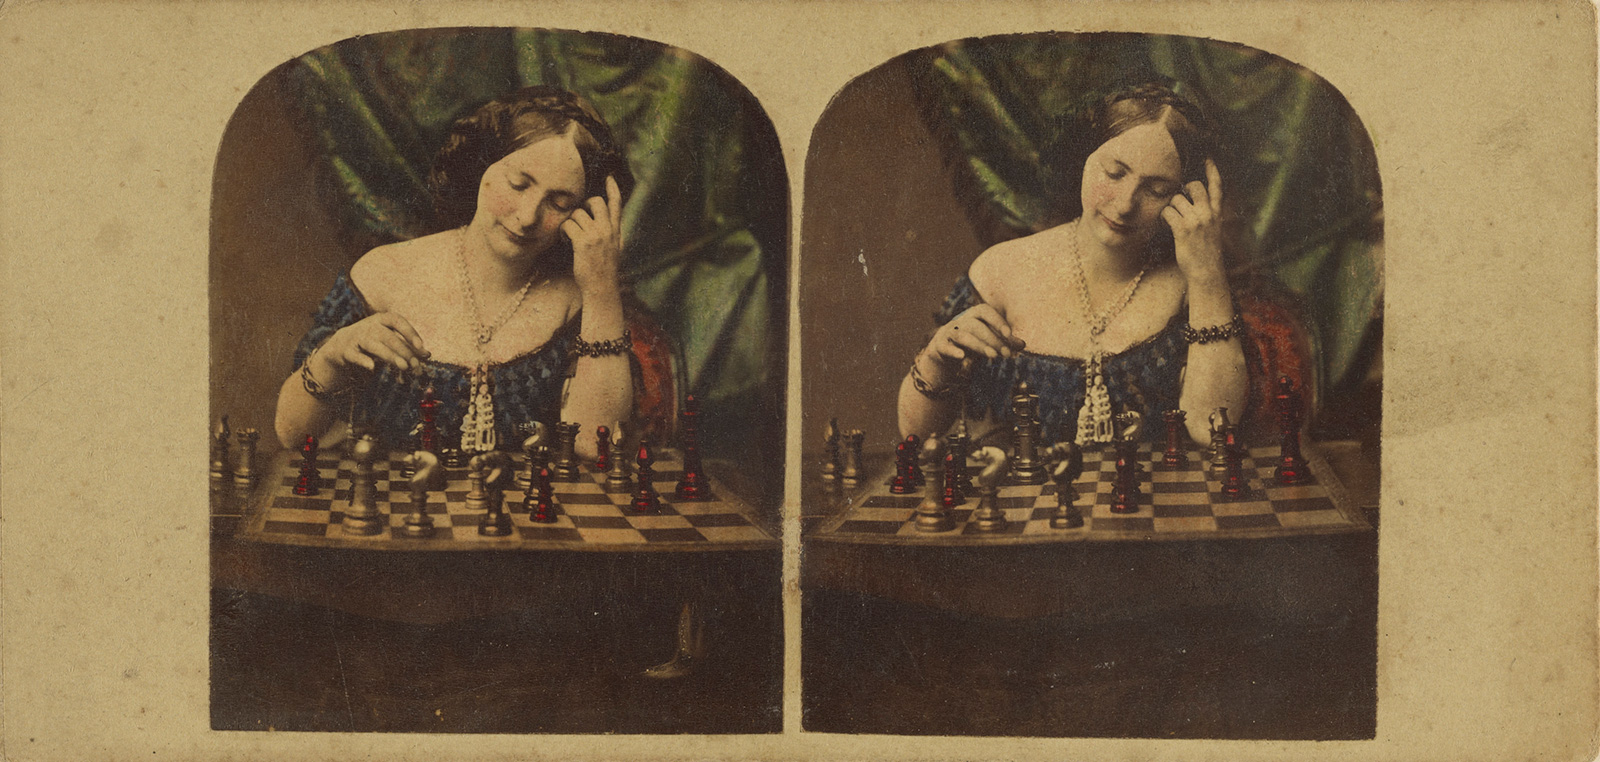 Looking at Chess in Art - A Game of Beautiful Problems